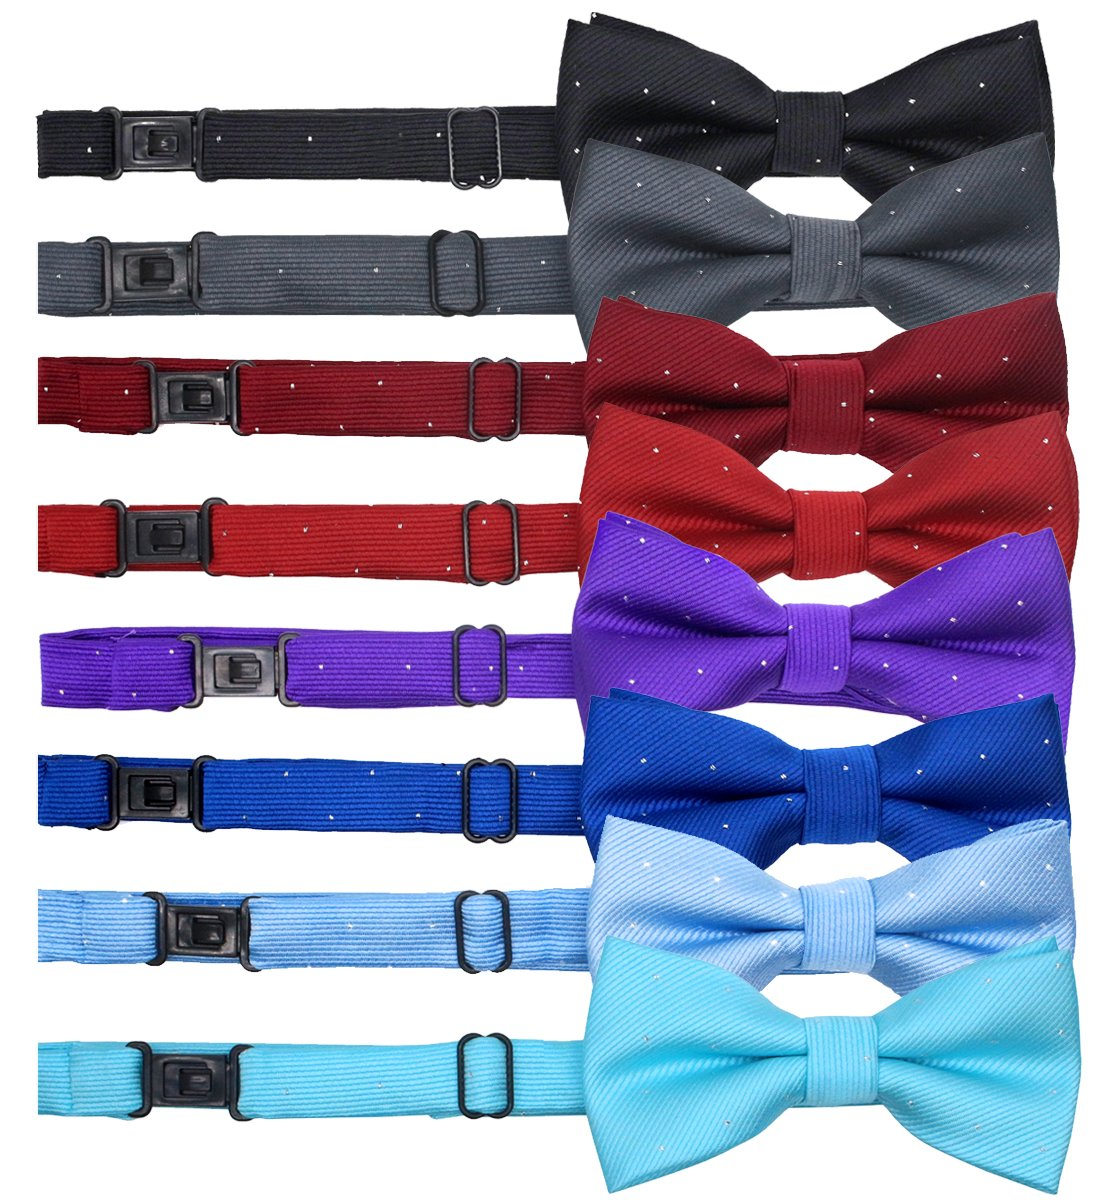 YOY Handcrafted Adorable Pet Bow Ties - 8-pack Adjustable Neck Tie 10''-17'' Polka Dots Bowties Dog Collar Neckties Kitty Puppy Grooming Accessories for Doggy Cat, 8 Colors (Genteel)